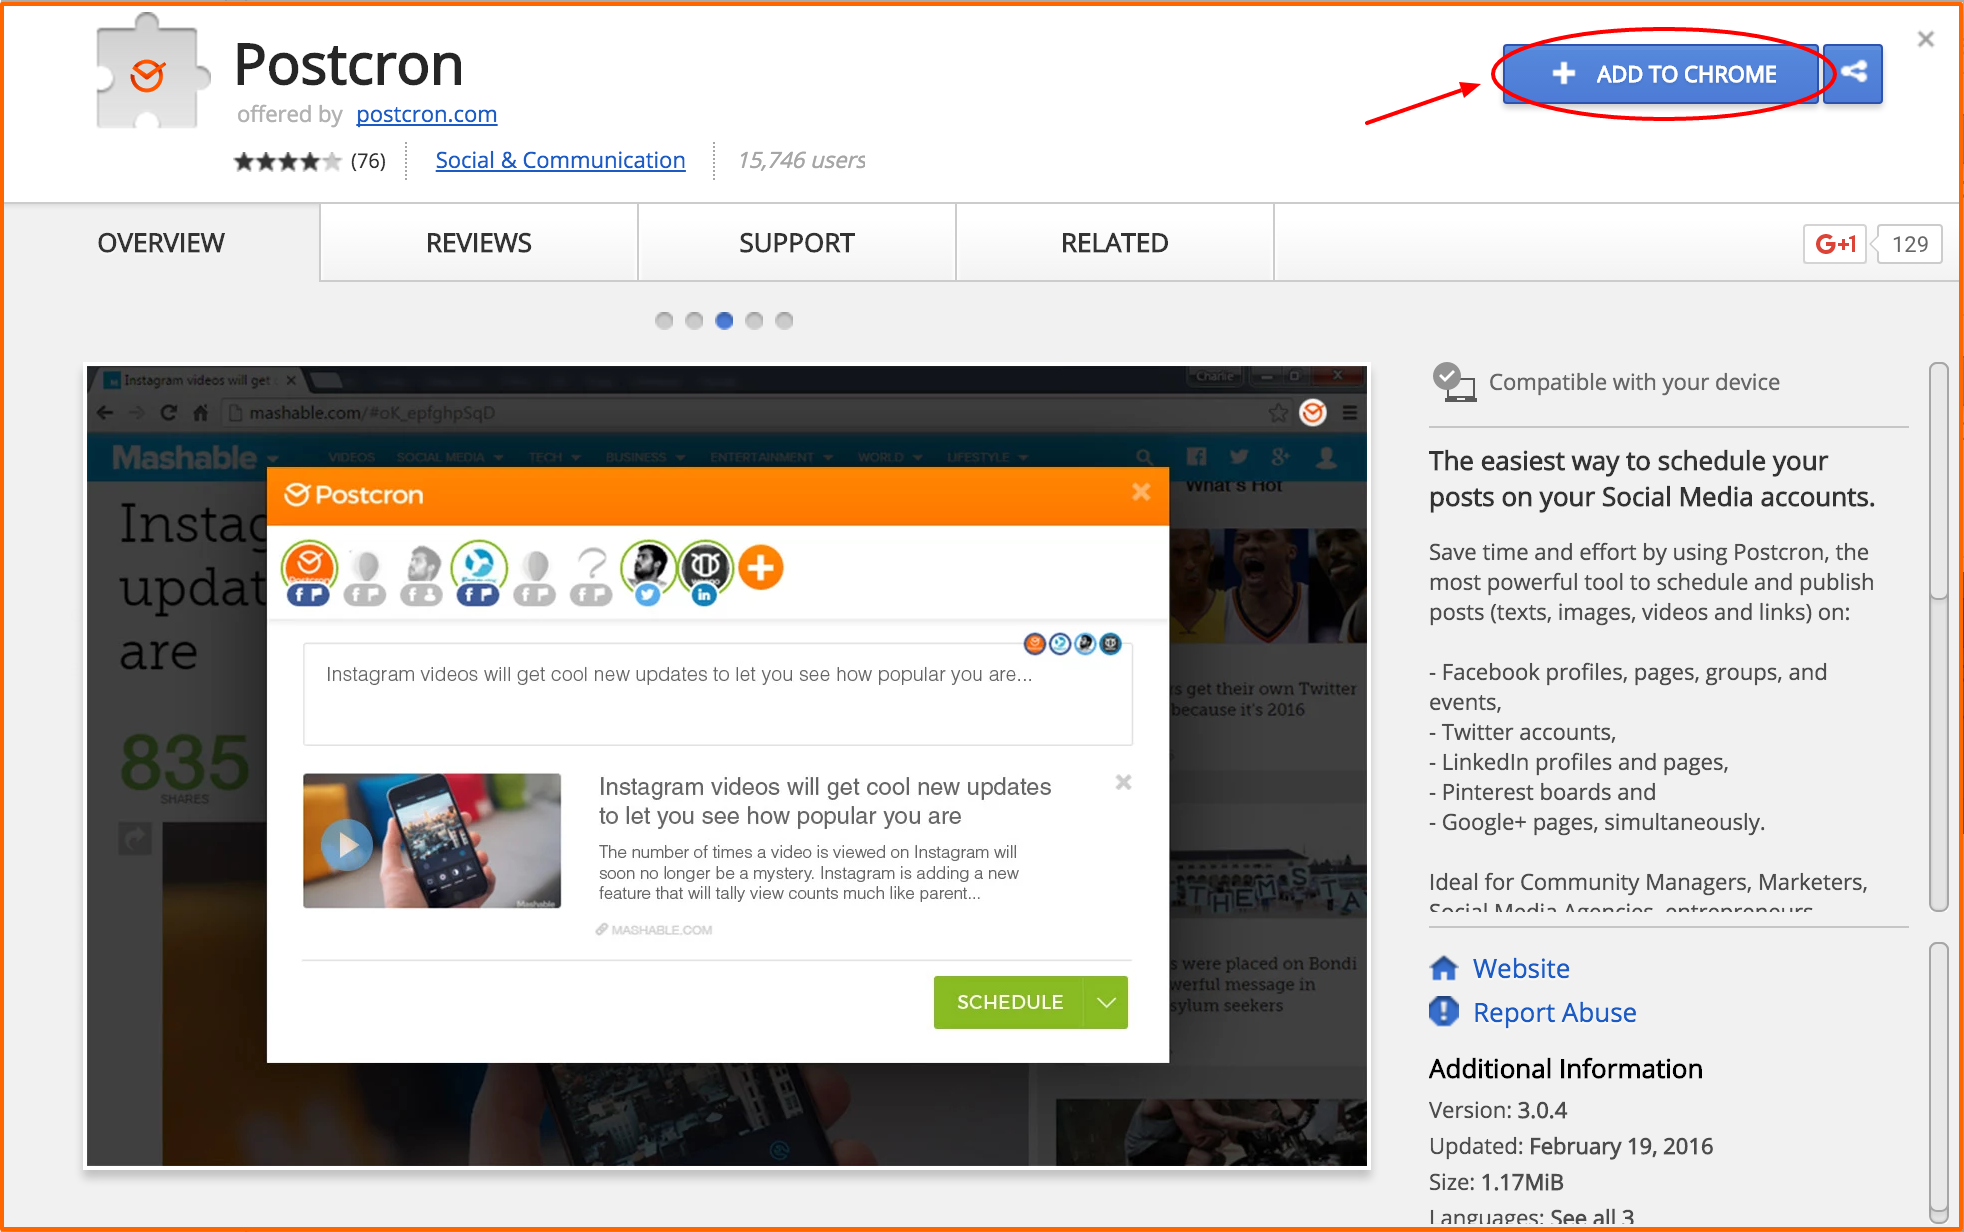 how to add chrome extensions without chrome store